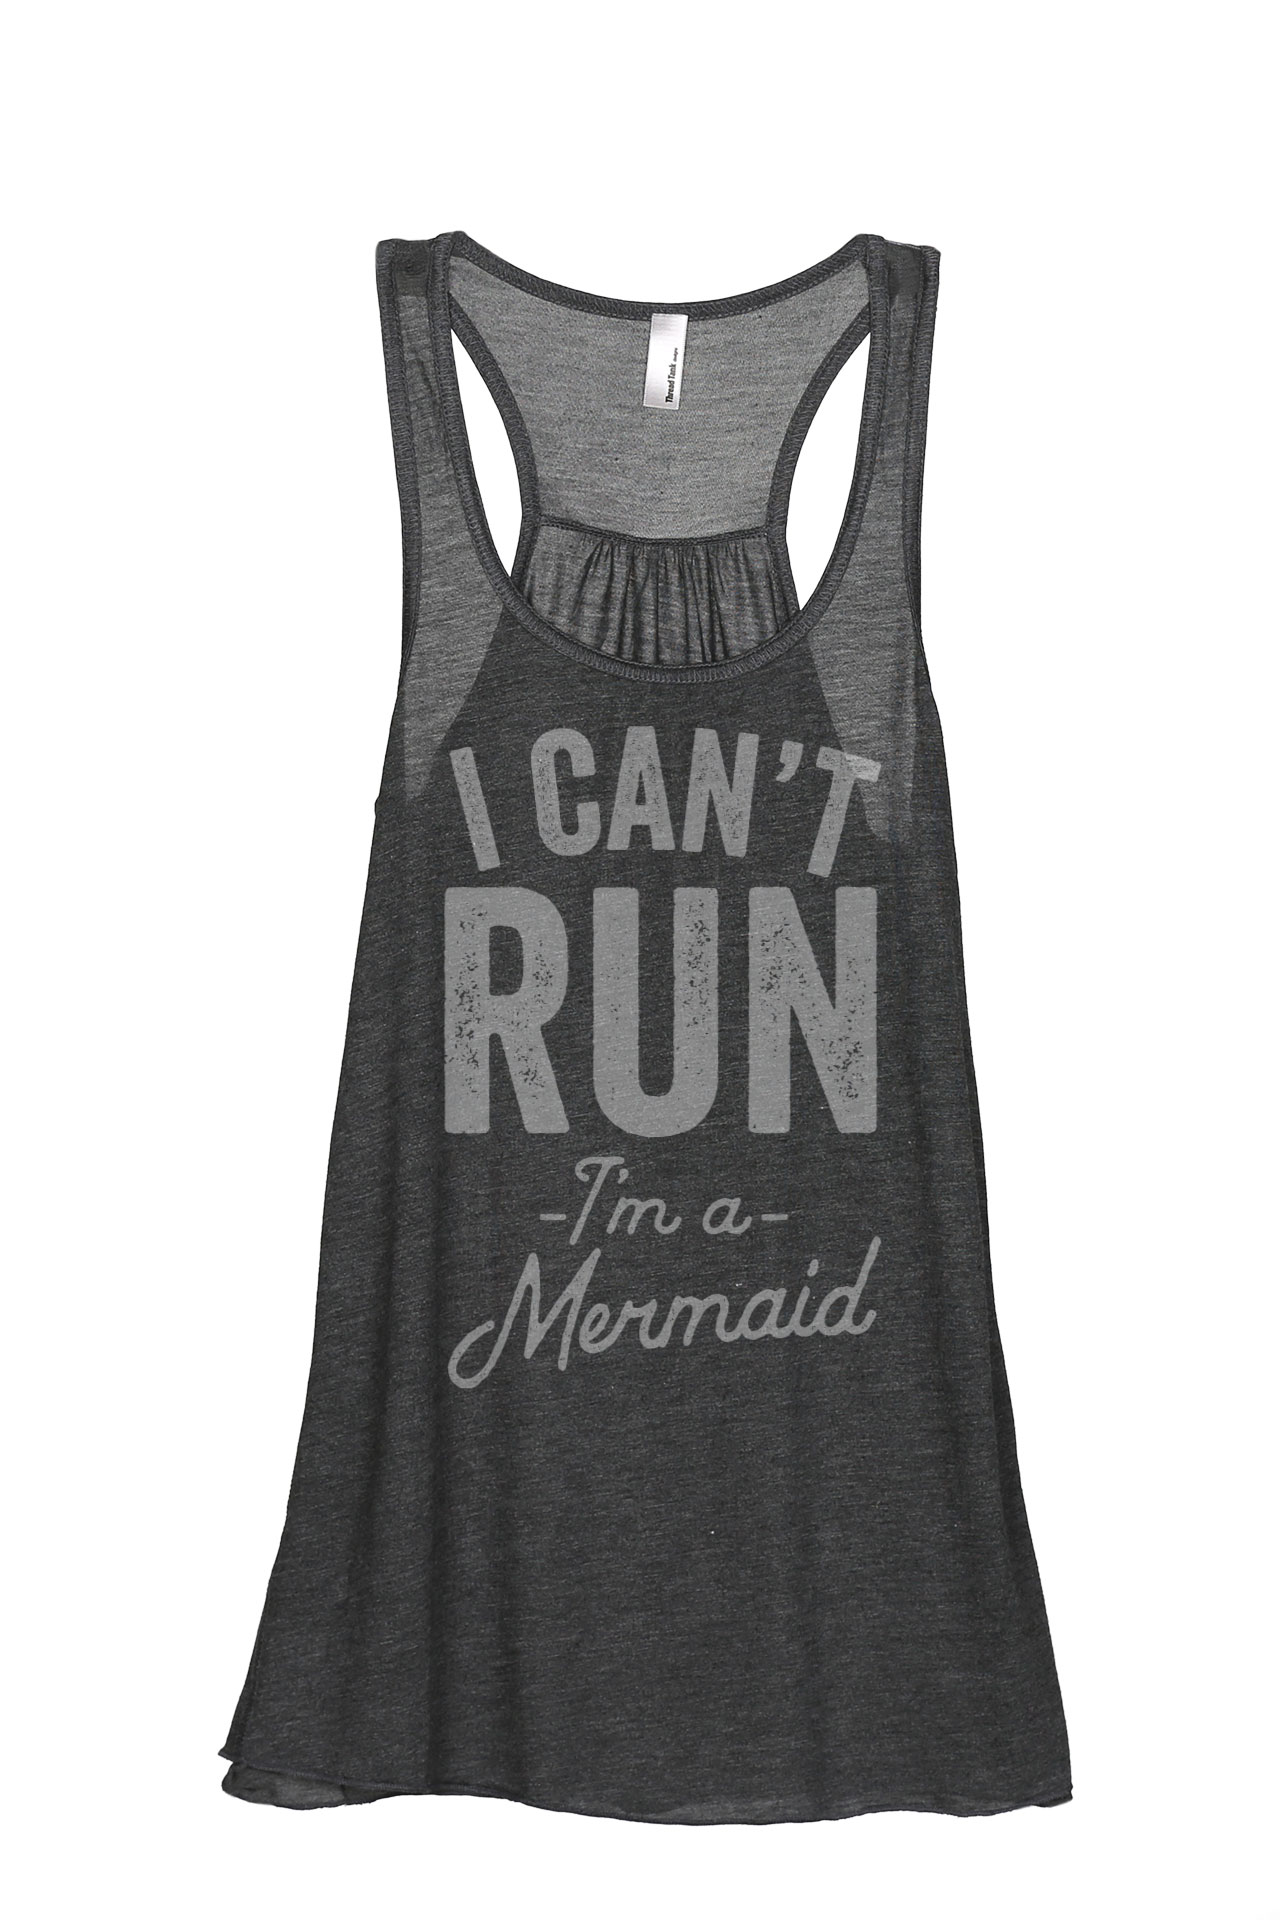 I Cant Run Im A Mermaid Baby Rompers One Piece Jumpsuits Summer Outfits Clothes Gray